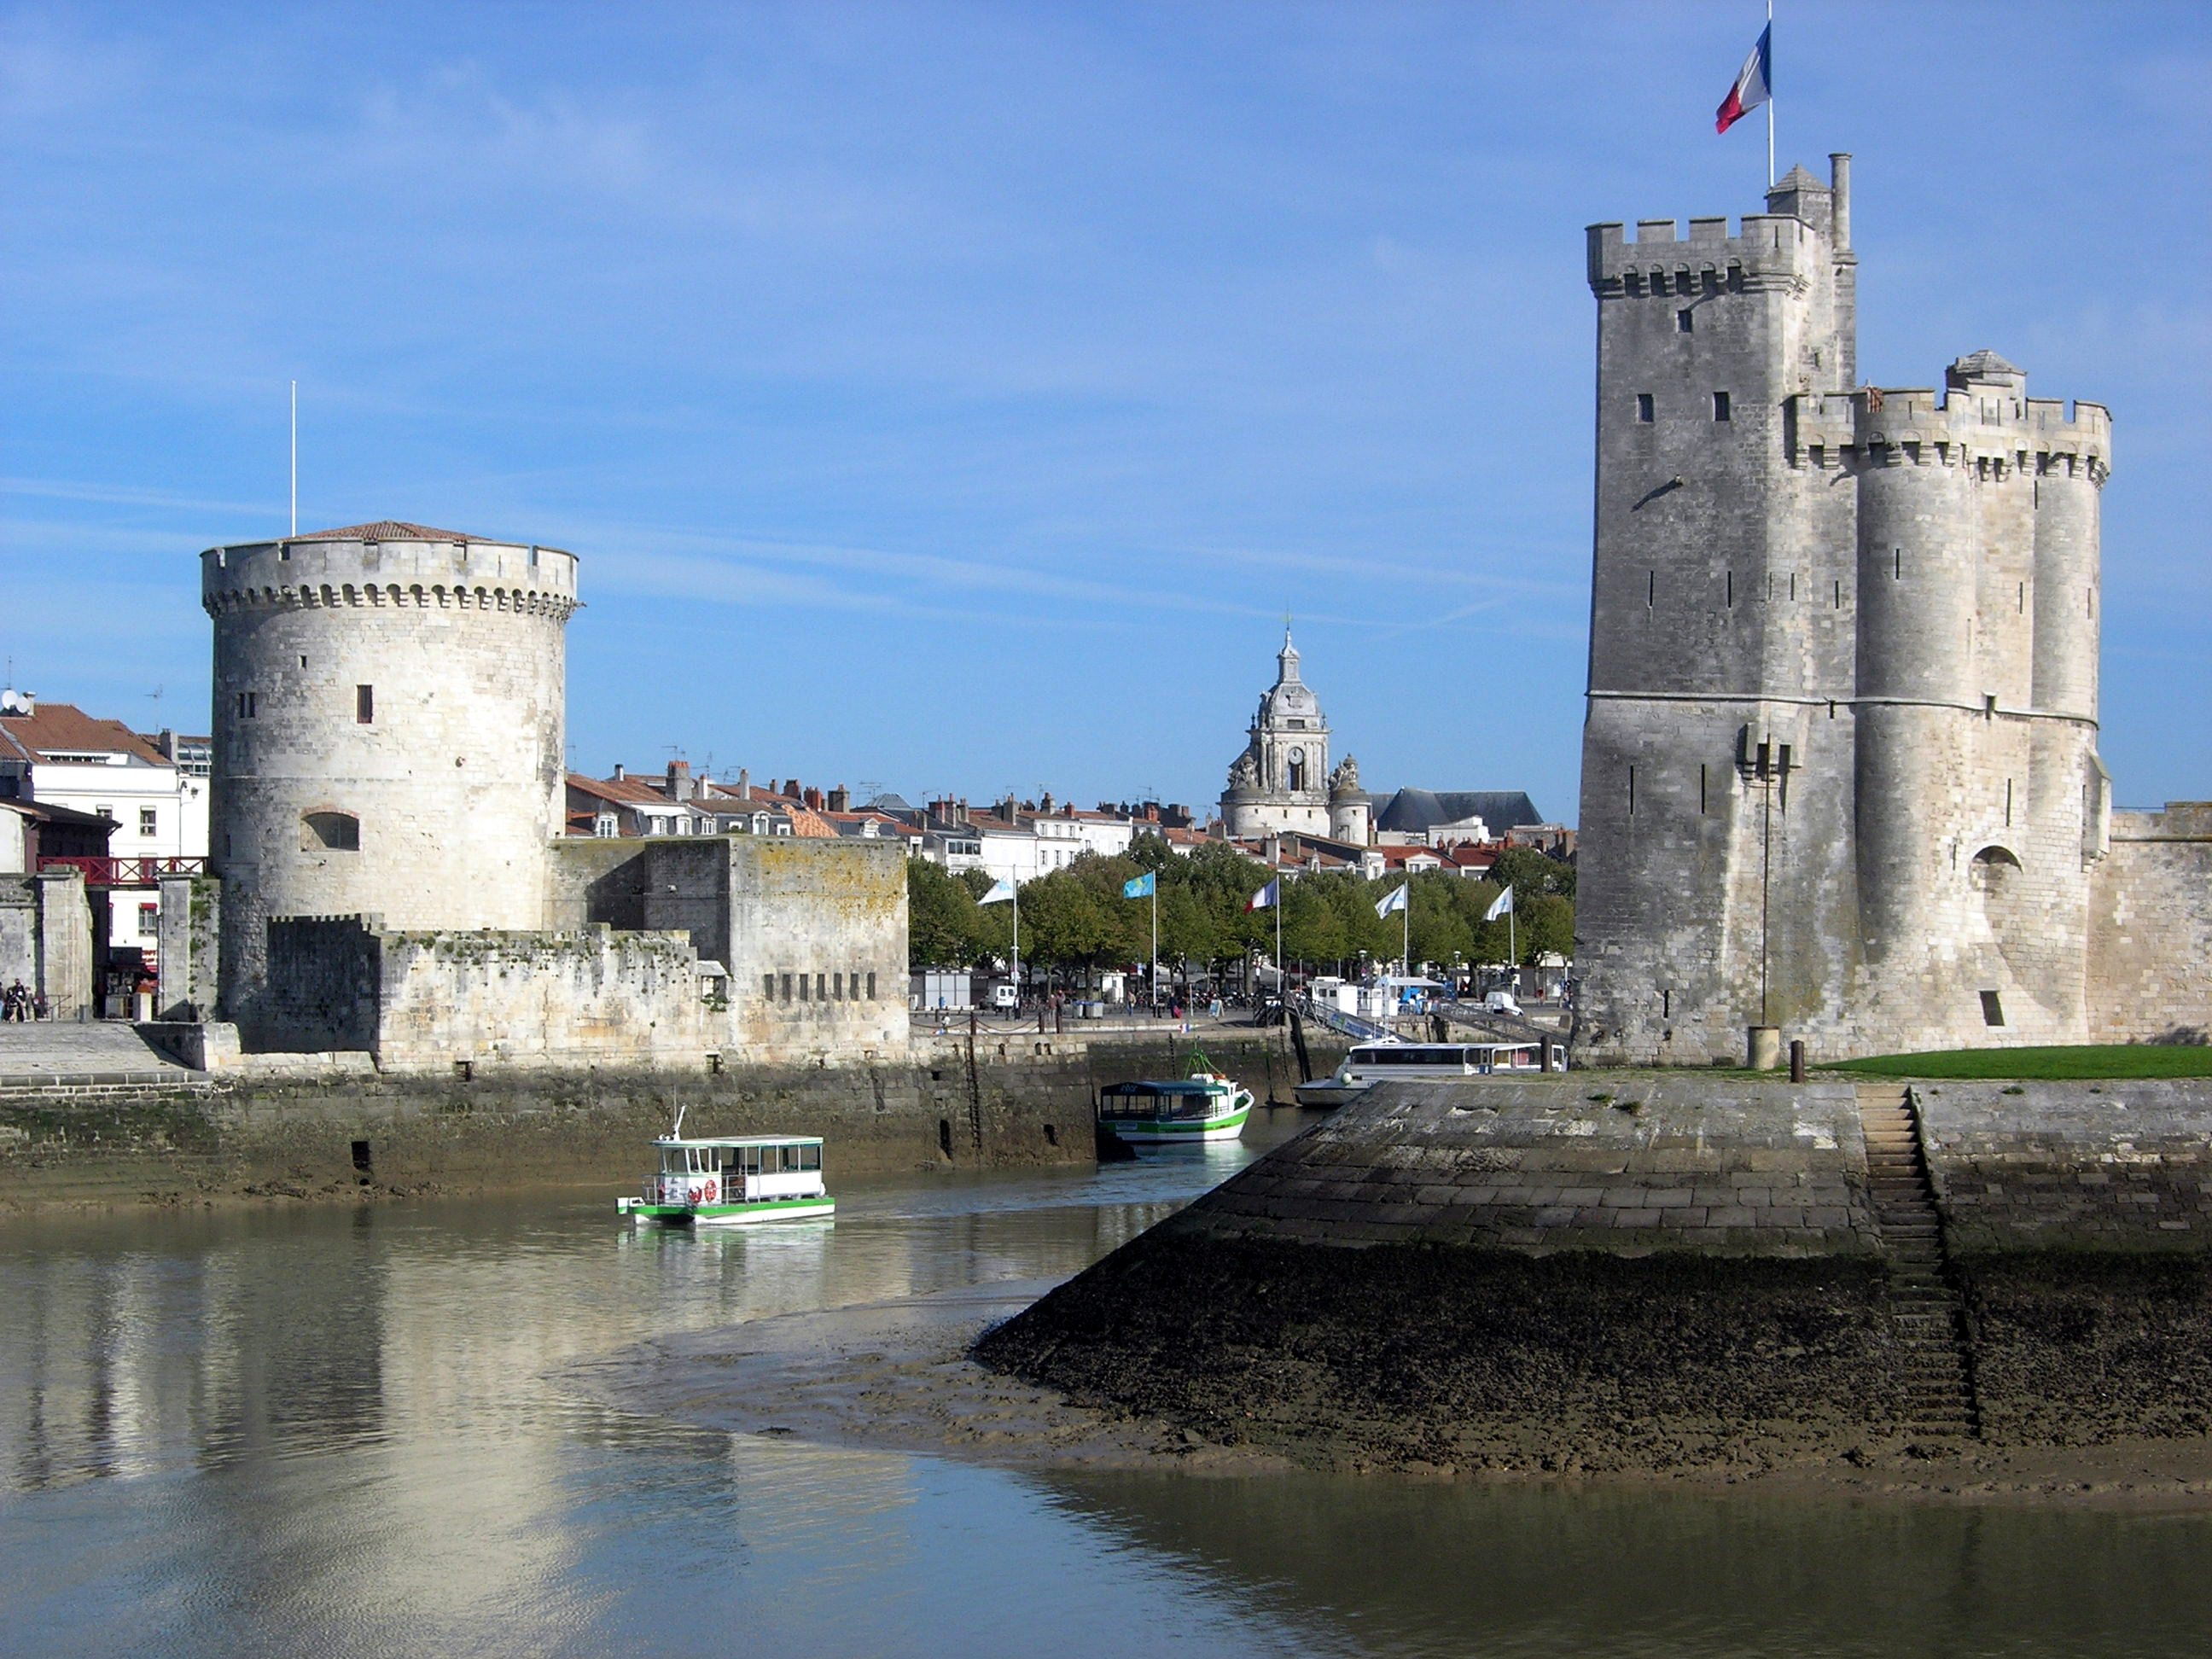 fichier entree vieux port la rochelle jpg wikip dia. Black Bedroom Furniture Sets. Home Design Ideas